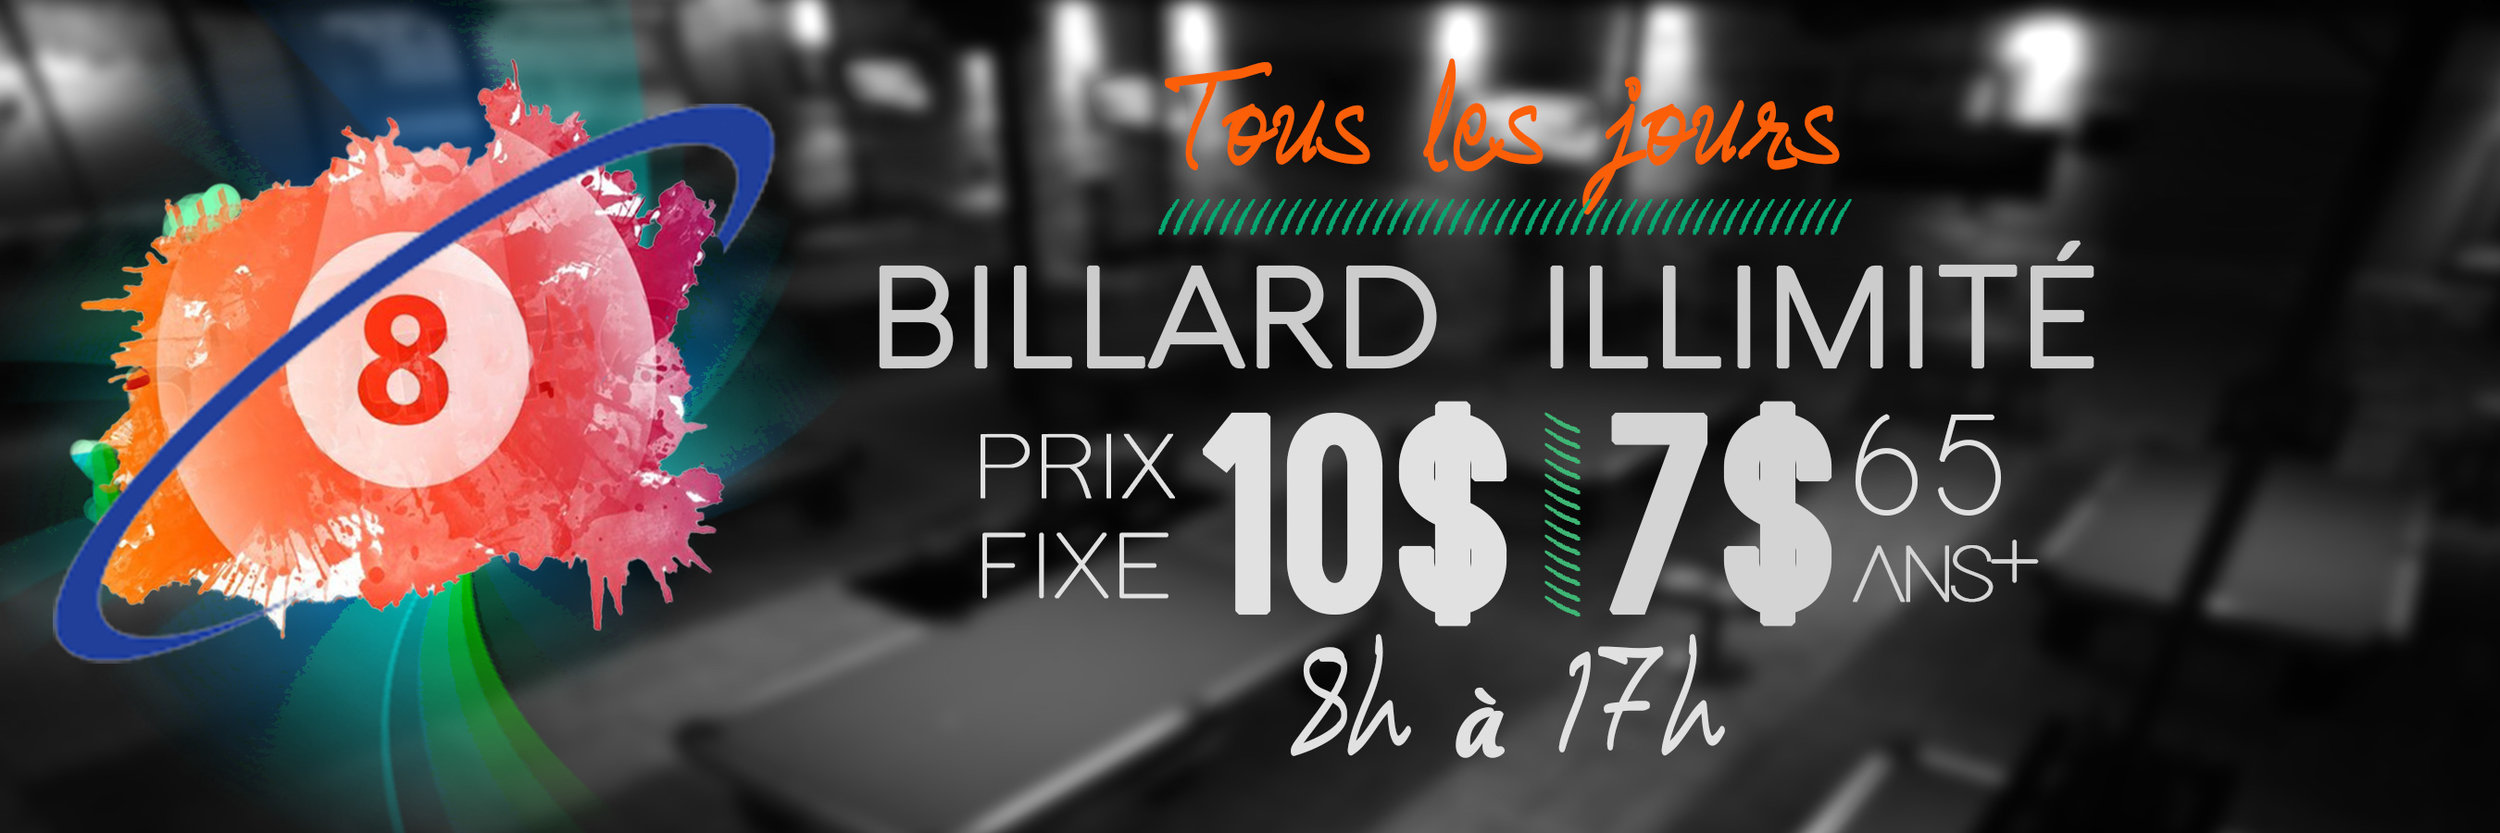 pool-illimite-french-banner-2017.jpg